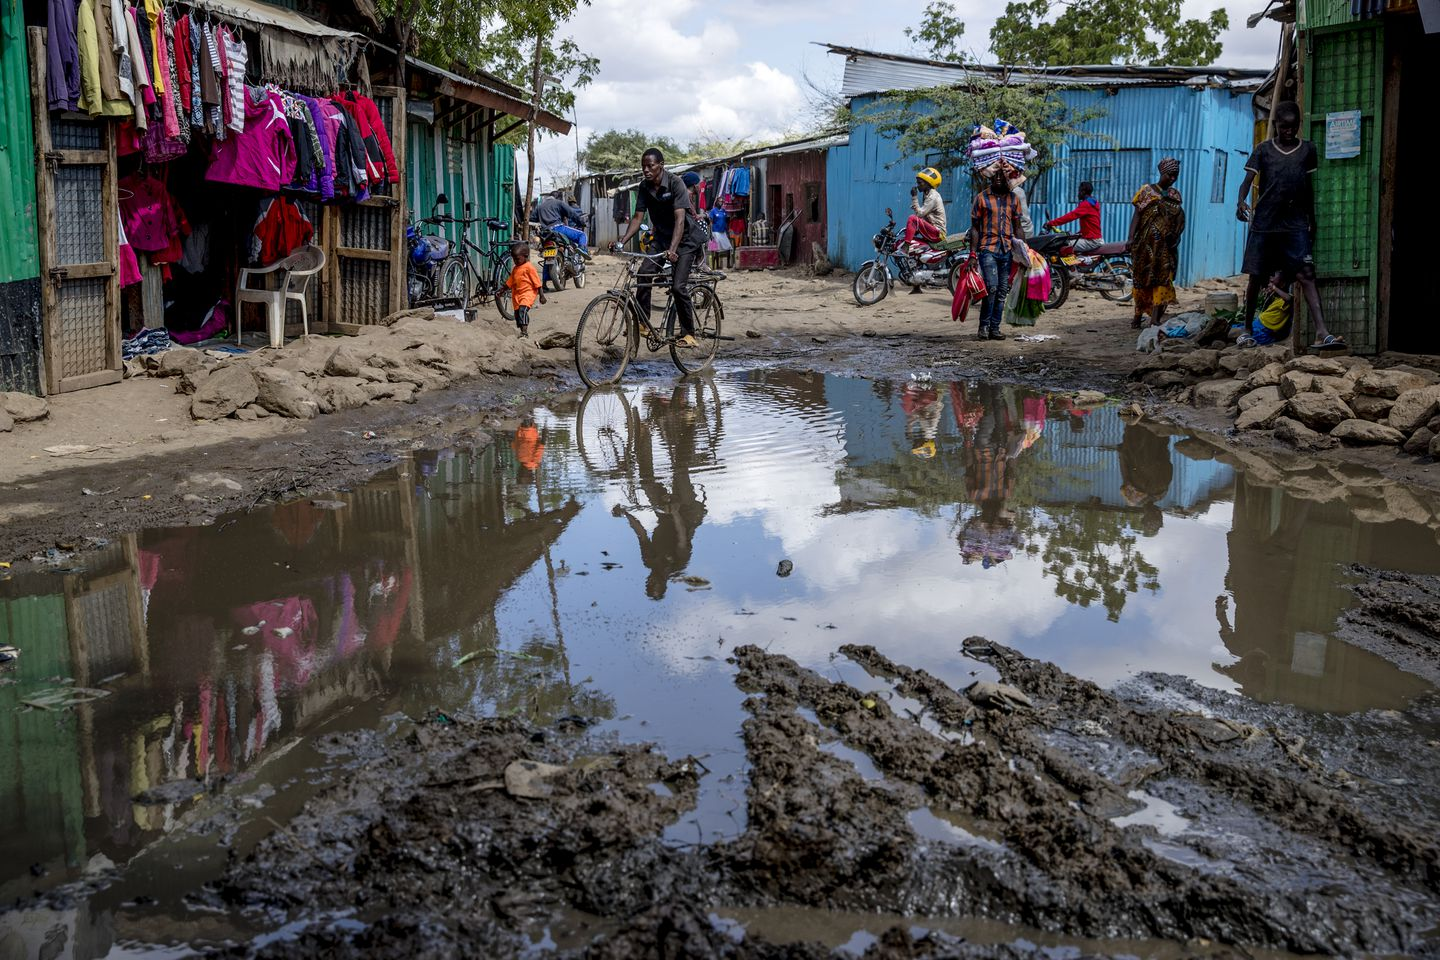 People made their way along a pool of standing water in the UNHCR refugee camp. Even after minor rains, water settles into pools that cause muddy and difficult conditions on roads.